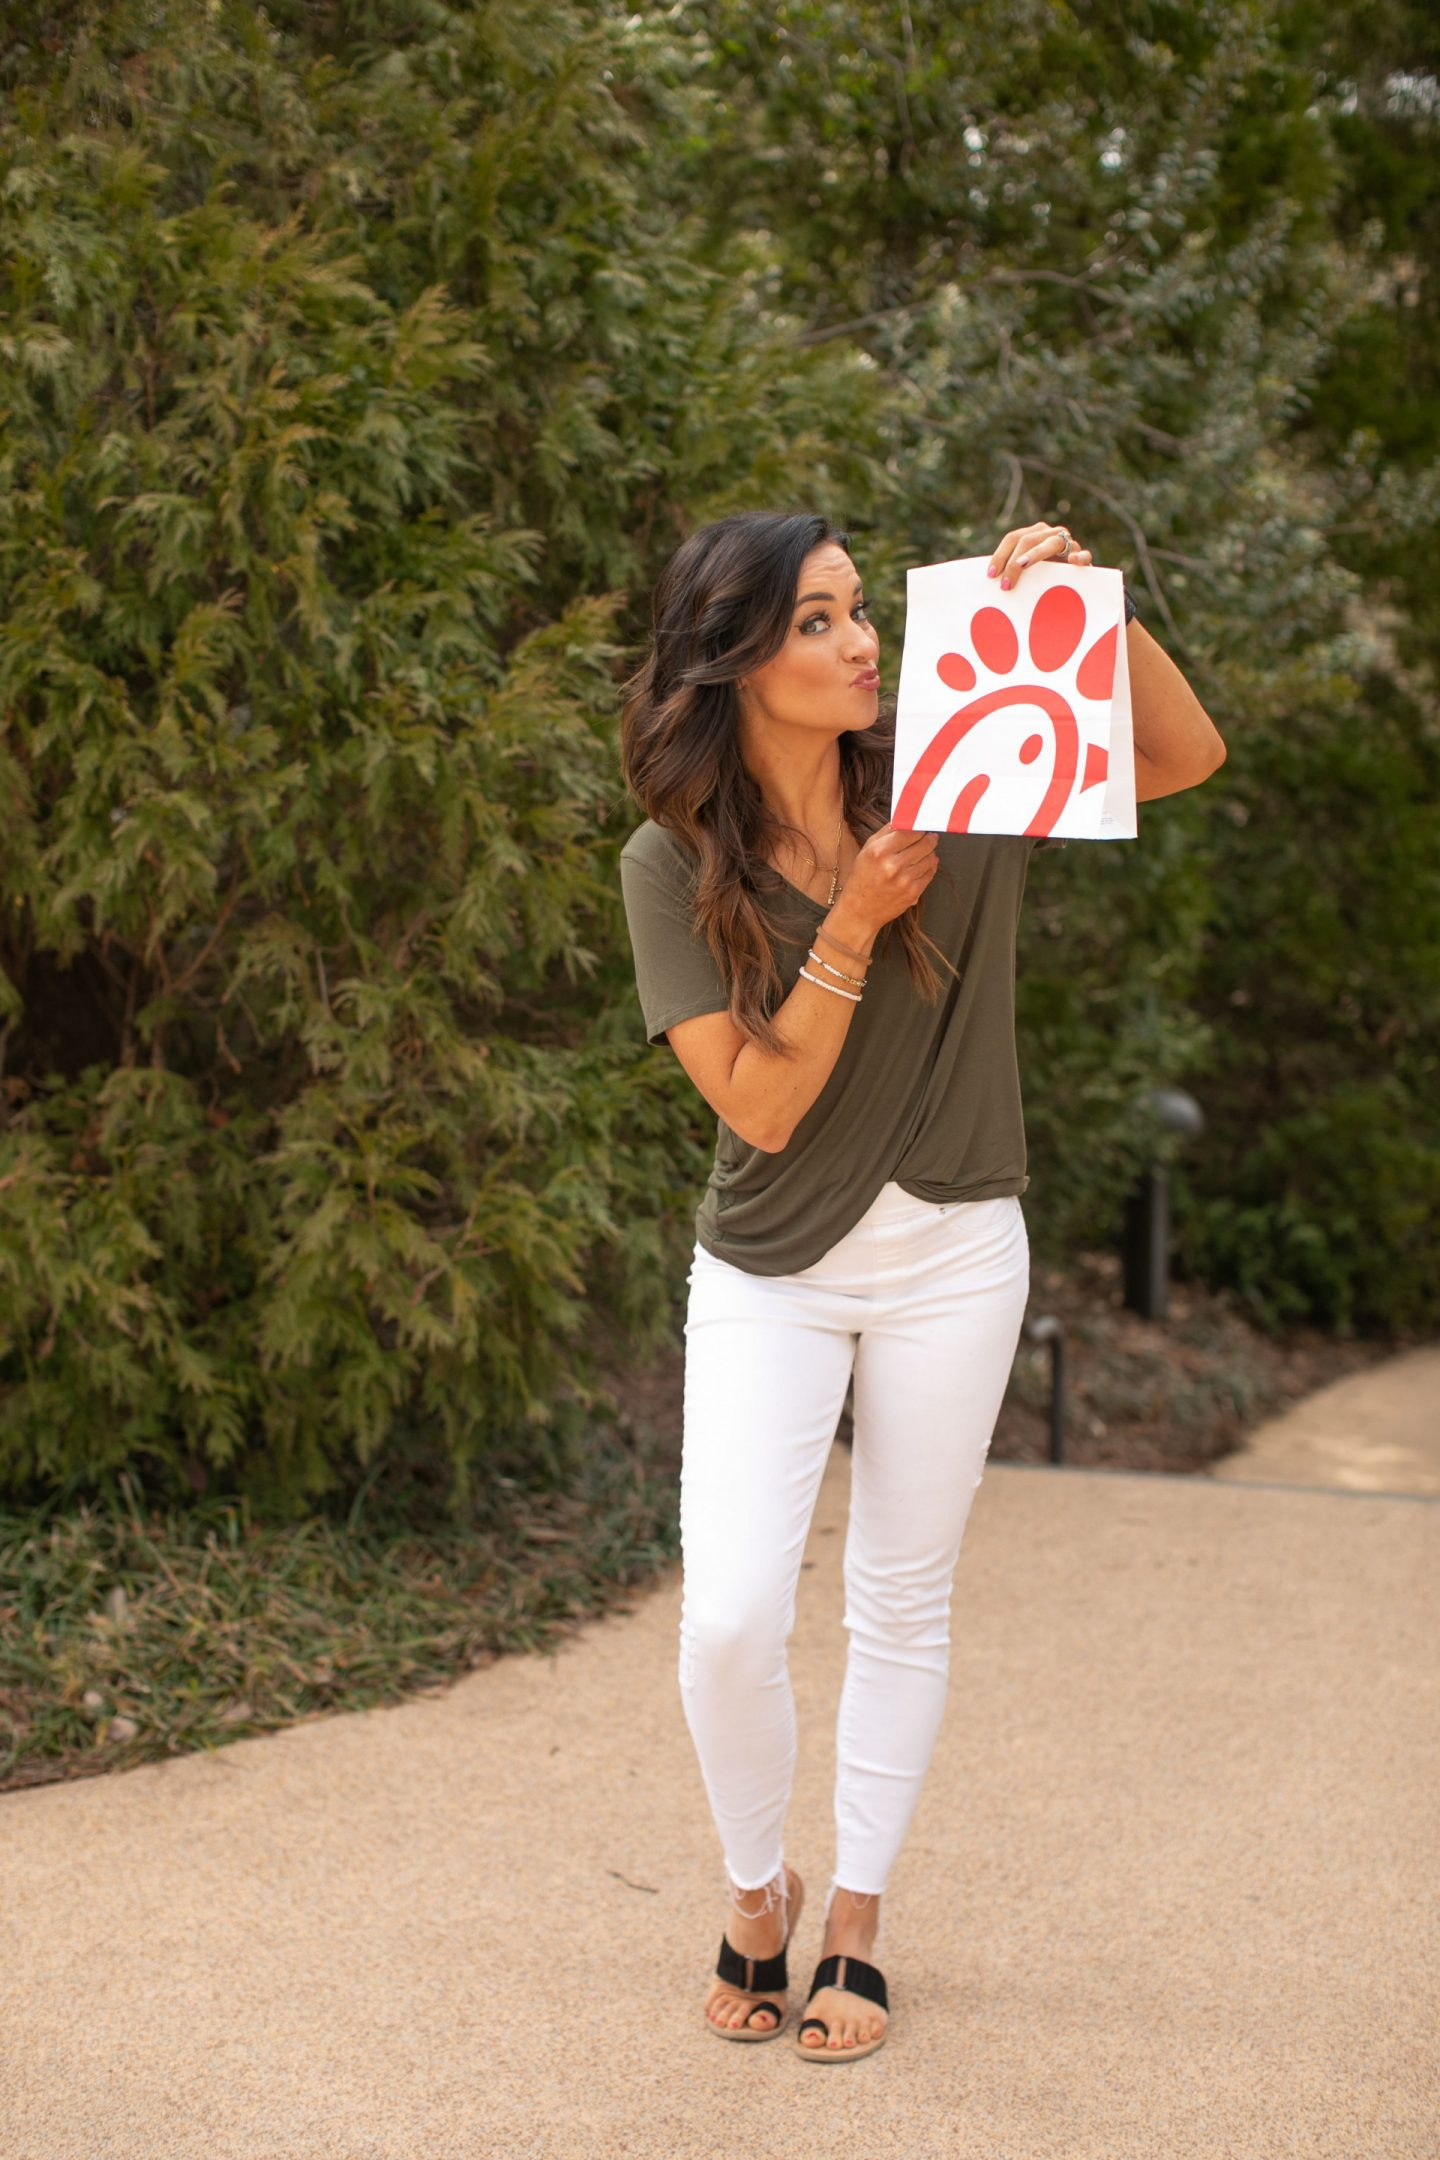 Healthy Chick-Fil-A Meals For The Mom On The Go by Alabama Family + Healthy Living blogger, Heather Brown // My Life Well Loved